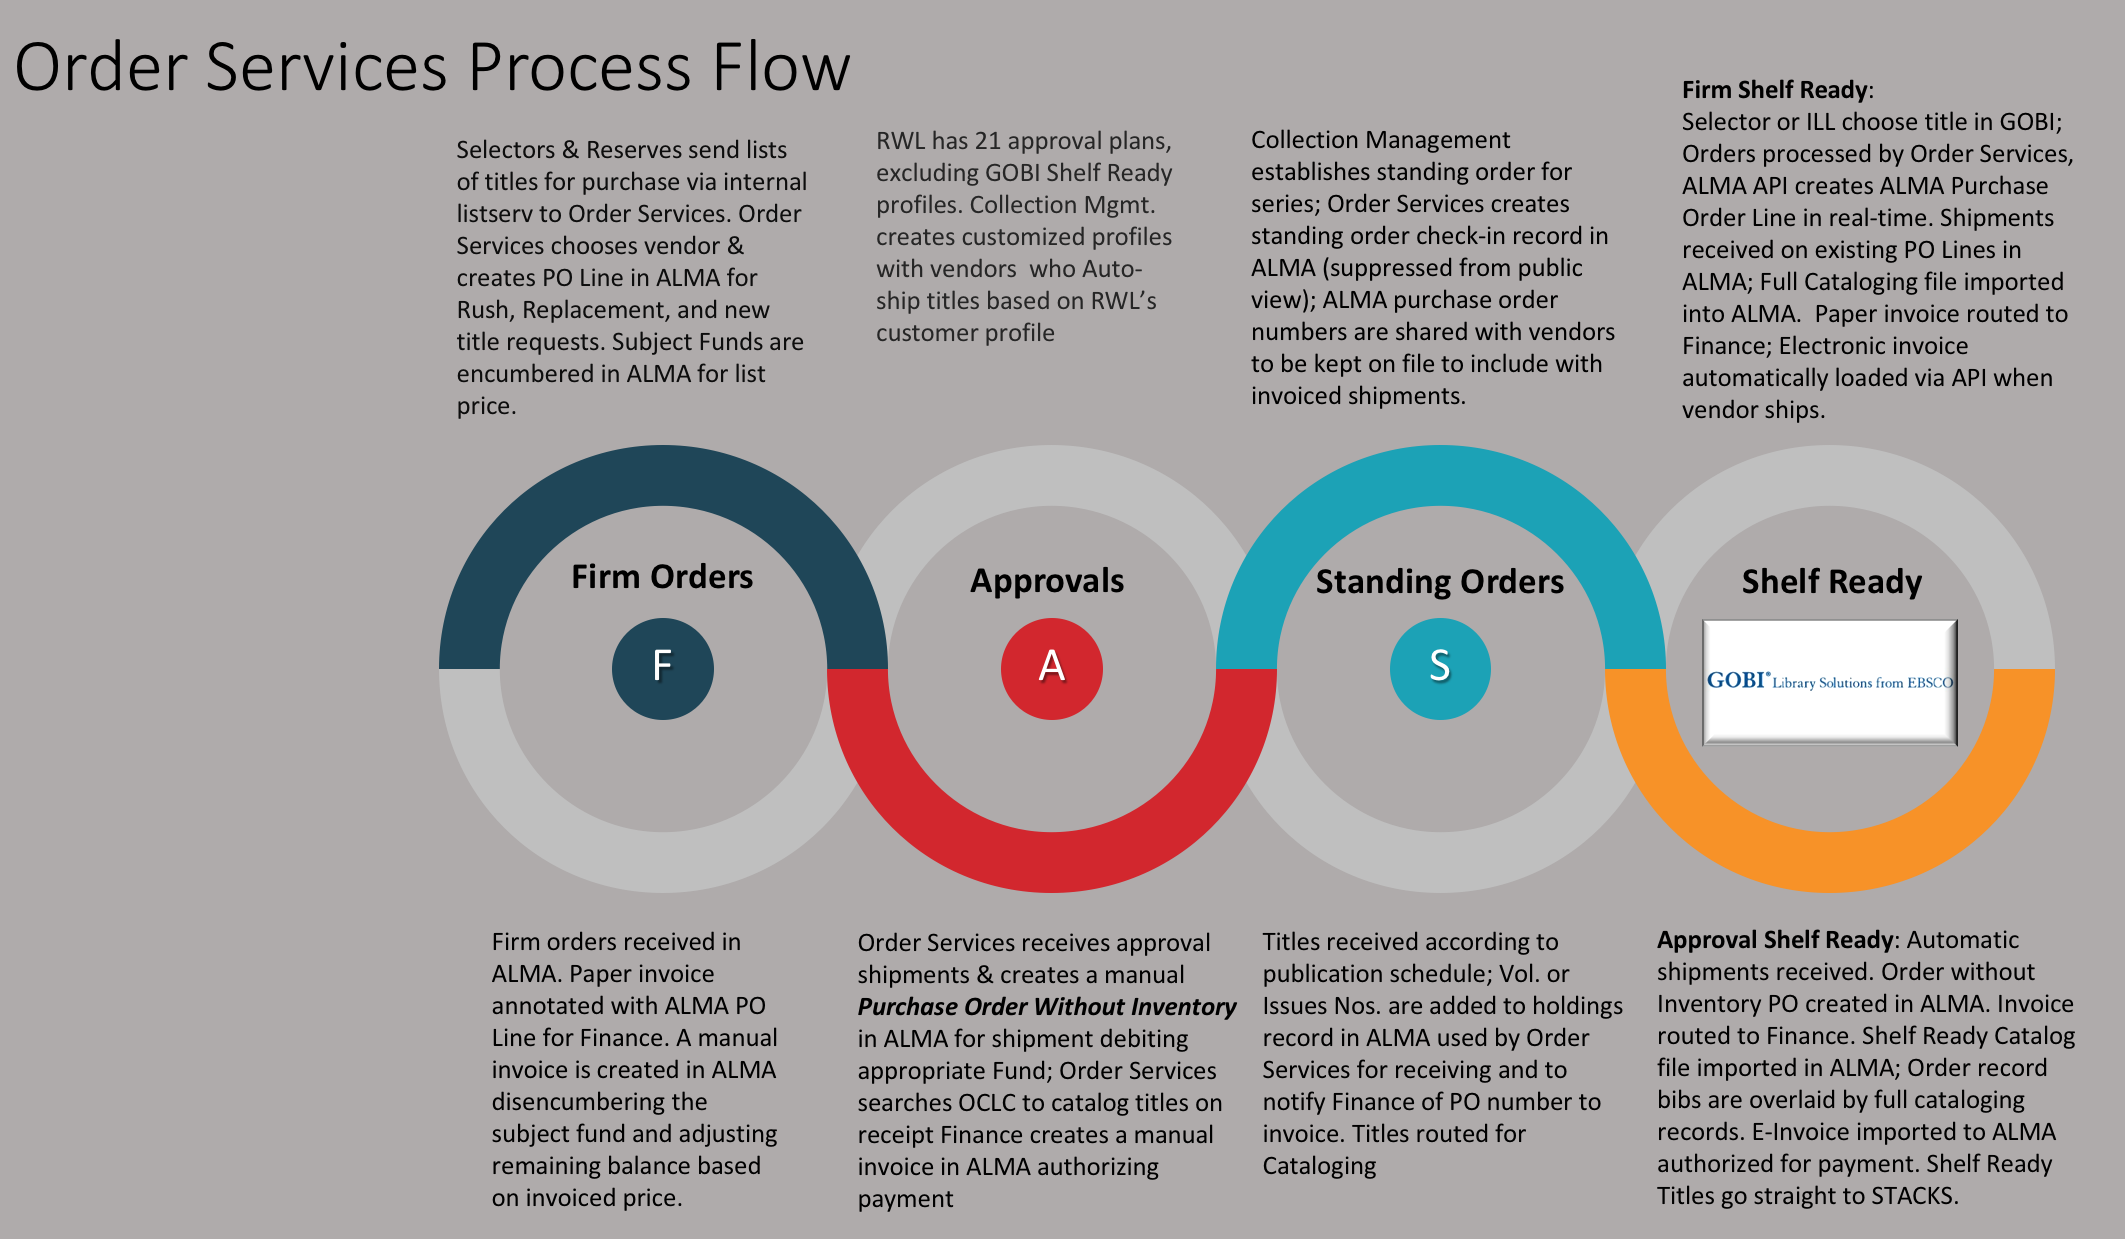 Process flow for Firm Orders, Approvals, Standing Orders and Shelf Ready plans